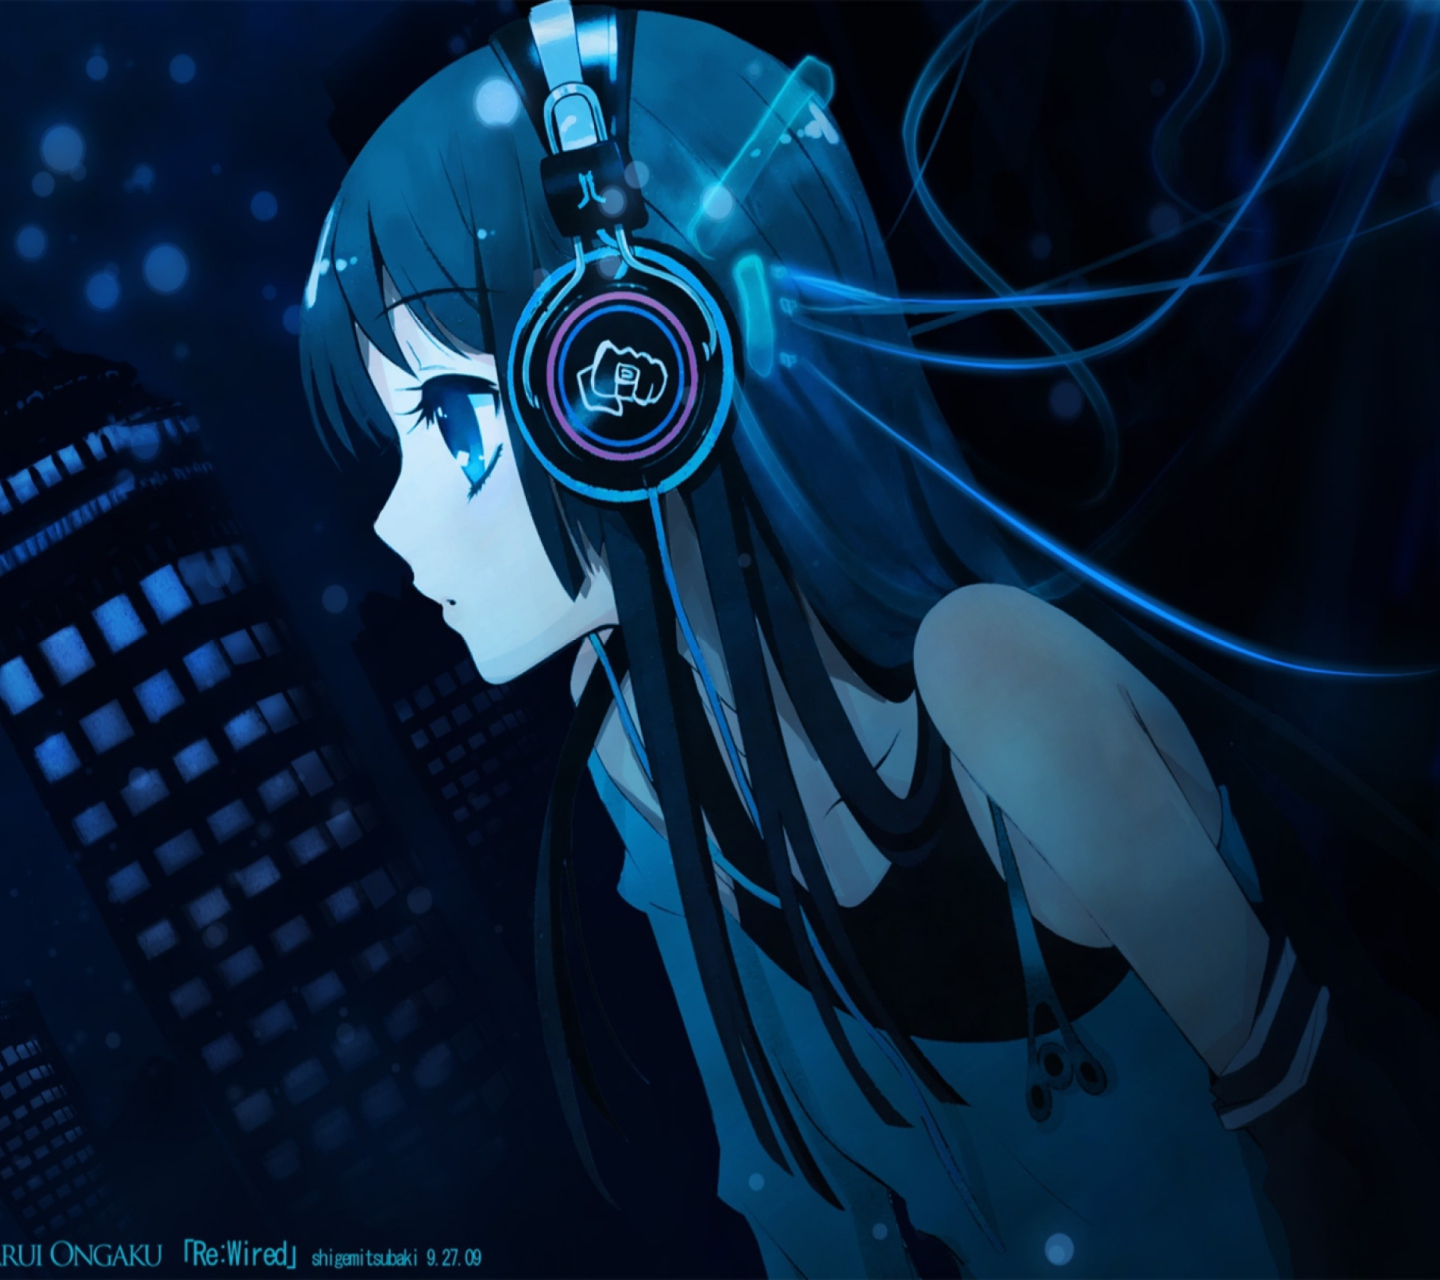 Headphones Wallpaper: Anime Girl With Headphones Wallpaper For Android 1440x1280